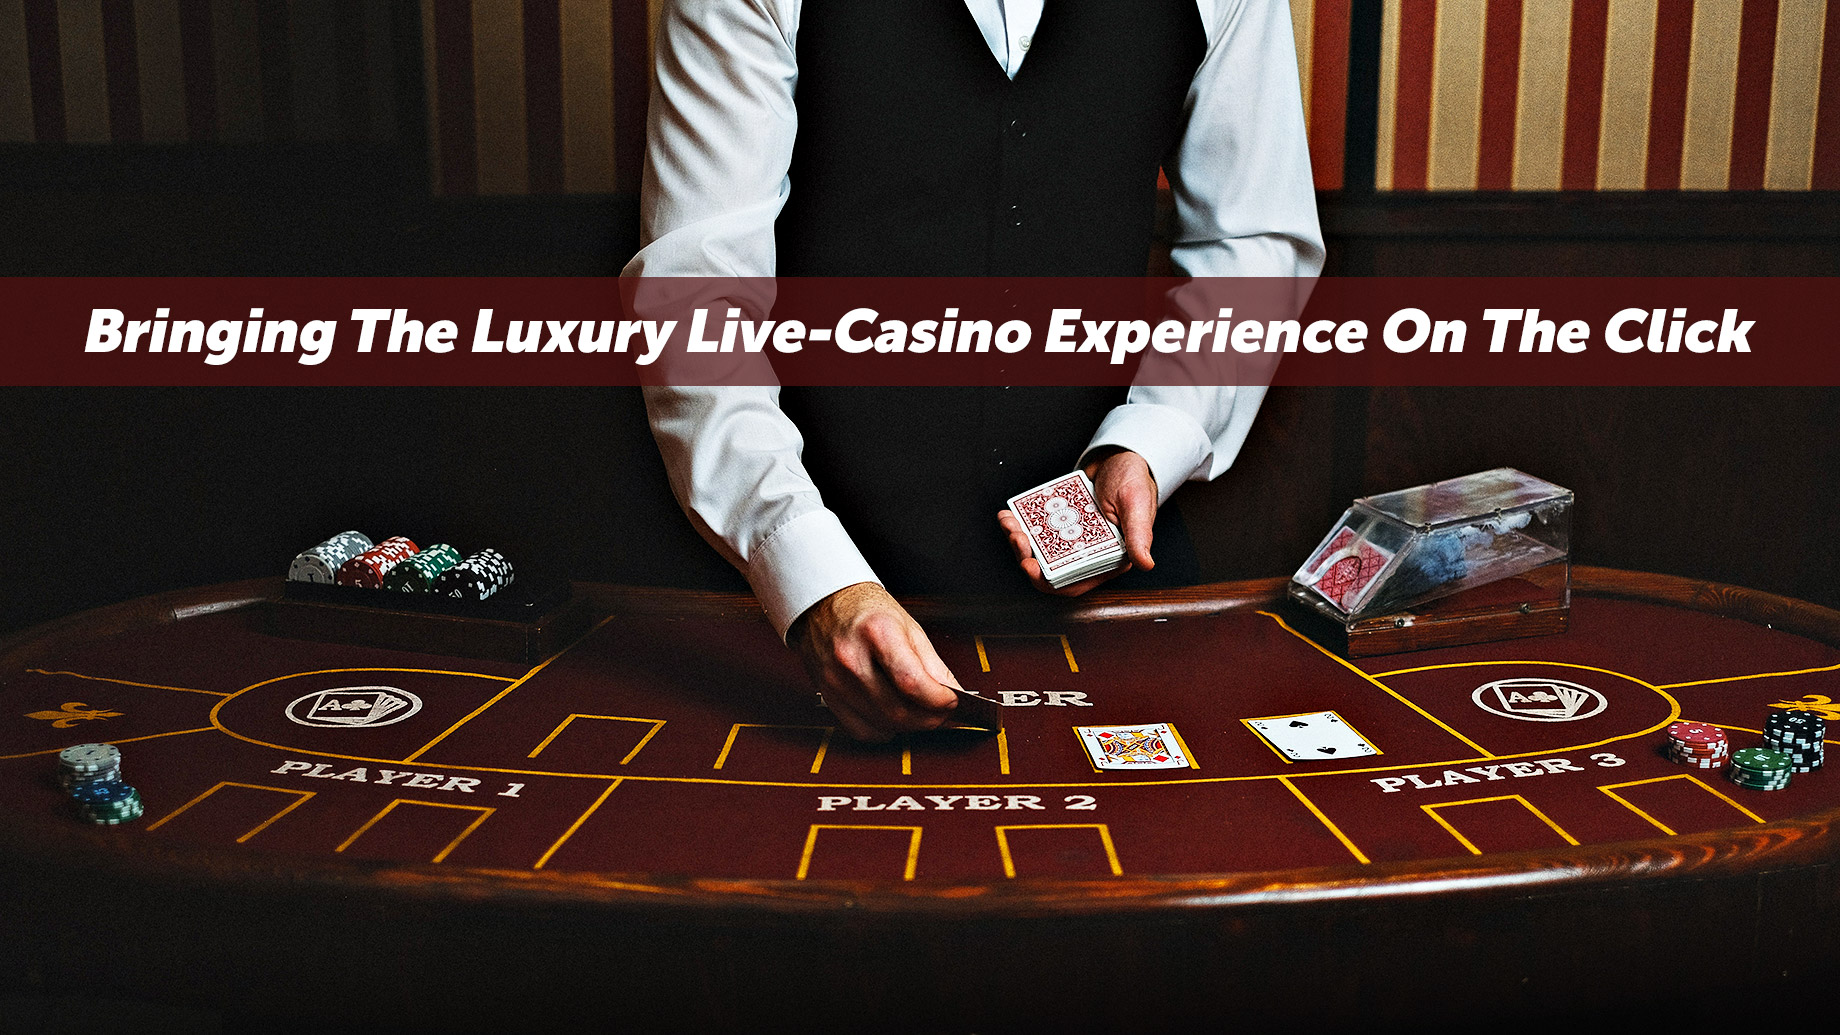 Bringing The Luxury Live-Casino Experience On The Click